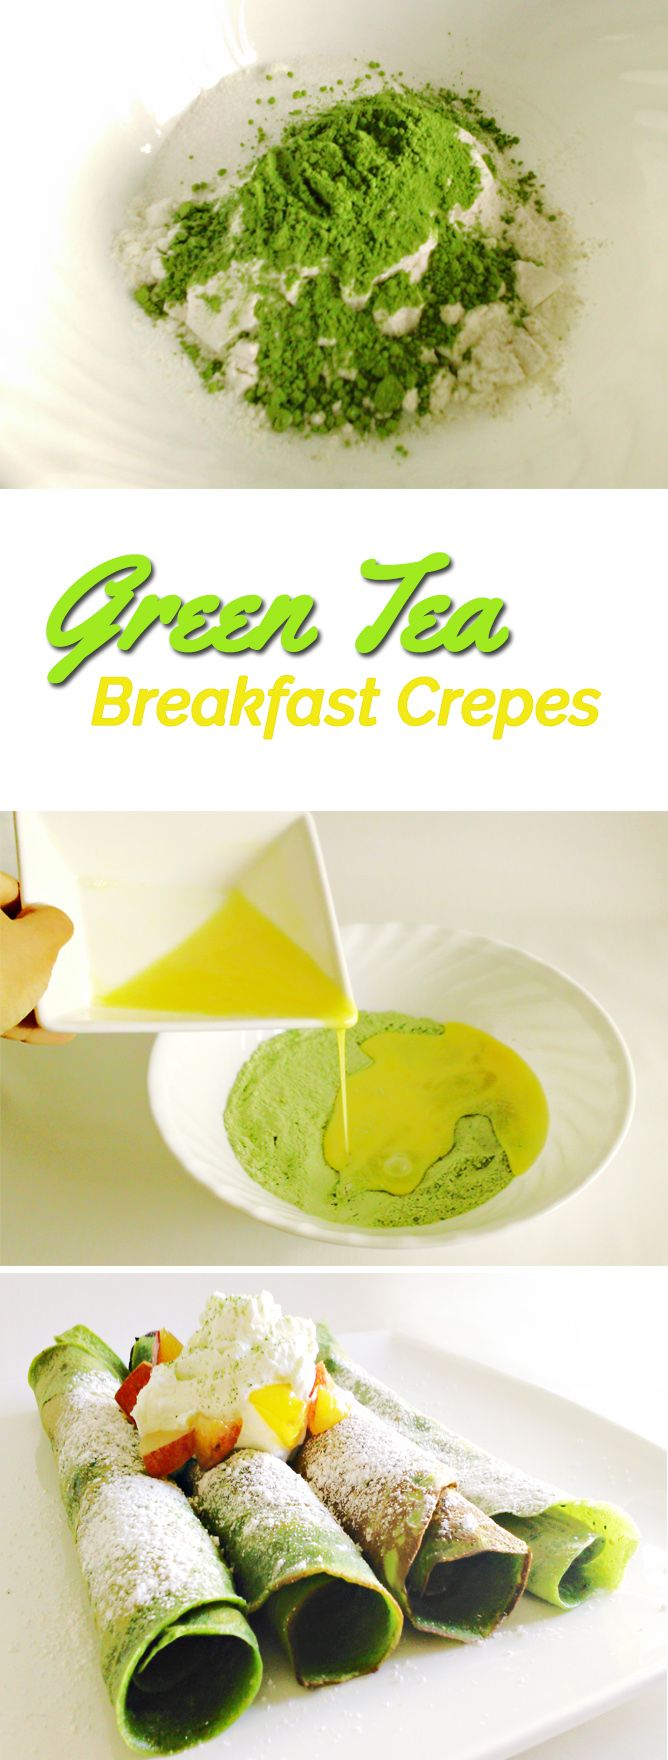 Matcha green tea can be so versatile, and adding it as an ingredient gives some of our favorite foods, such as crepes, an energizing, antioxidant-packed boost! With nutritional properties equivalent to 10x that of regular green tea, a little matcha goes a long way. But it's not only about nutrition – these matcha green tea crepes taste as appetizing as they look http://www.matchamax.com/pages/matcha-green-tea-breakfast-crepes